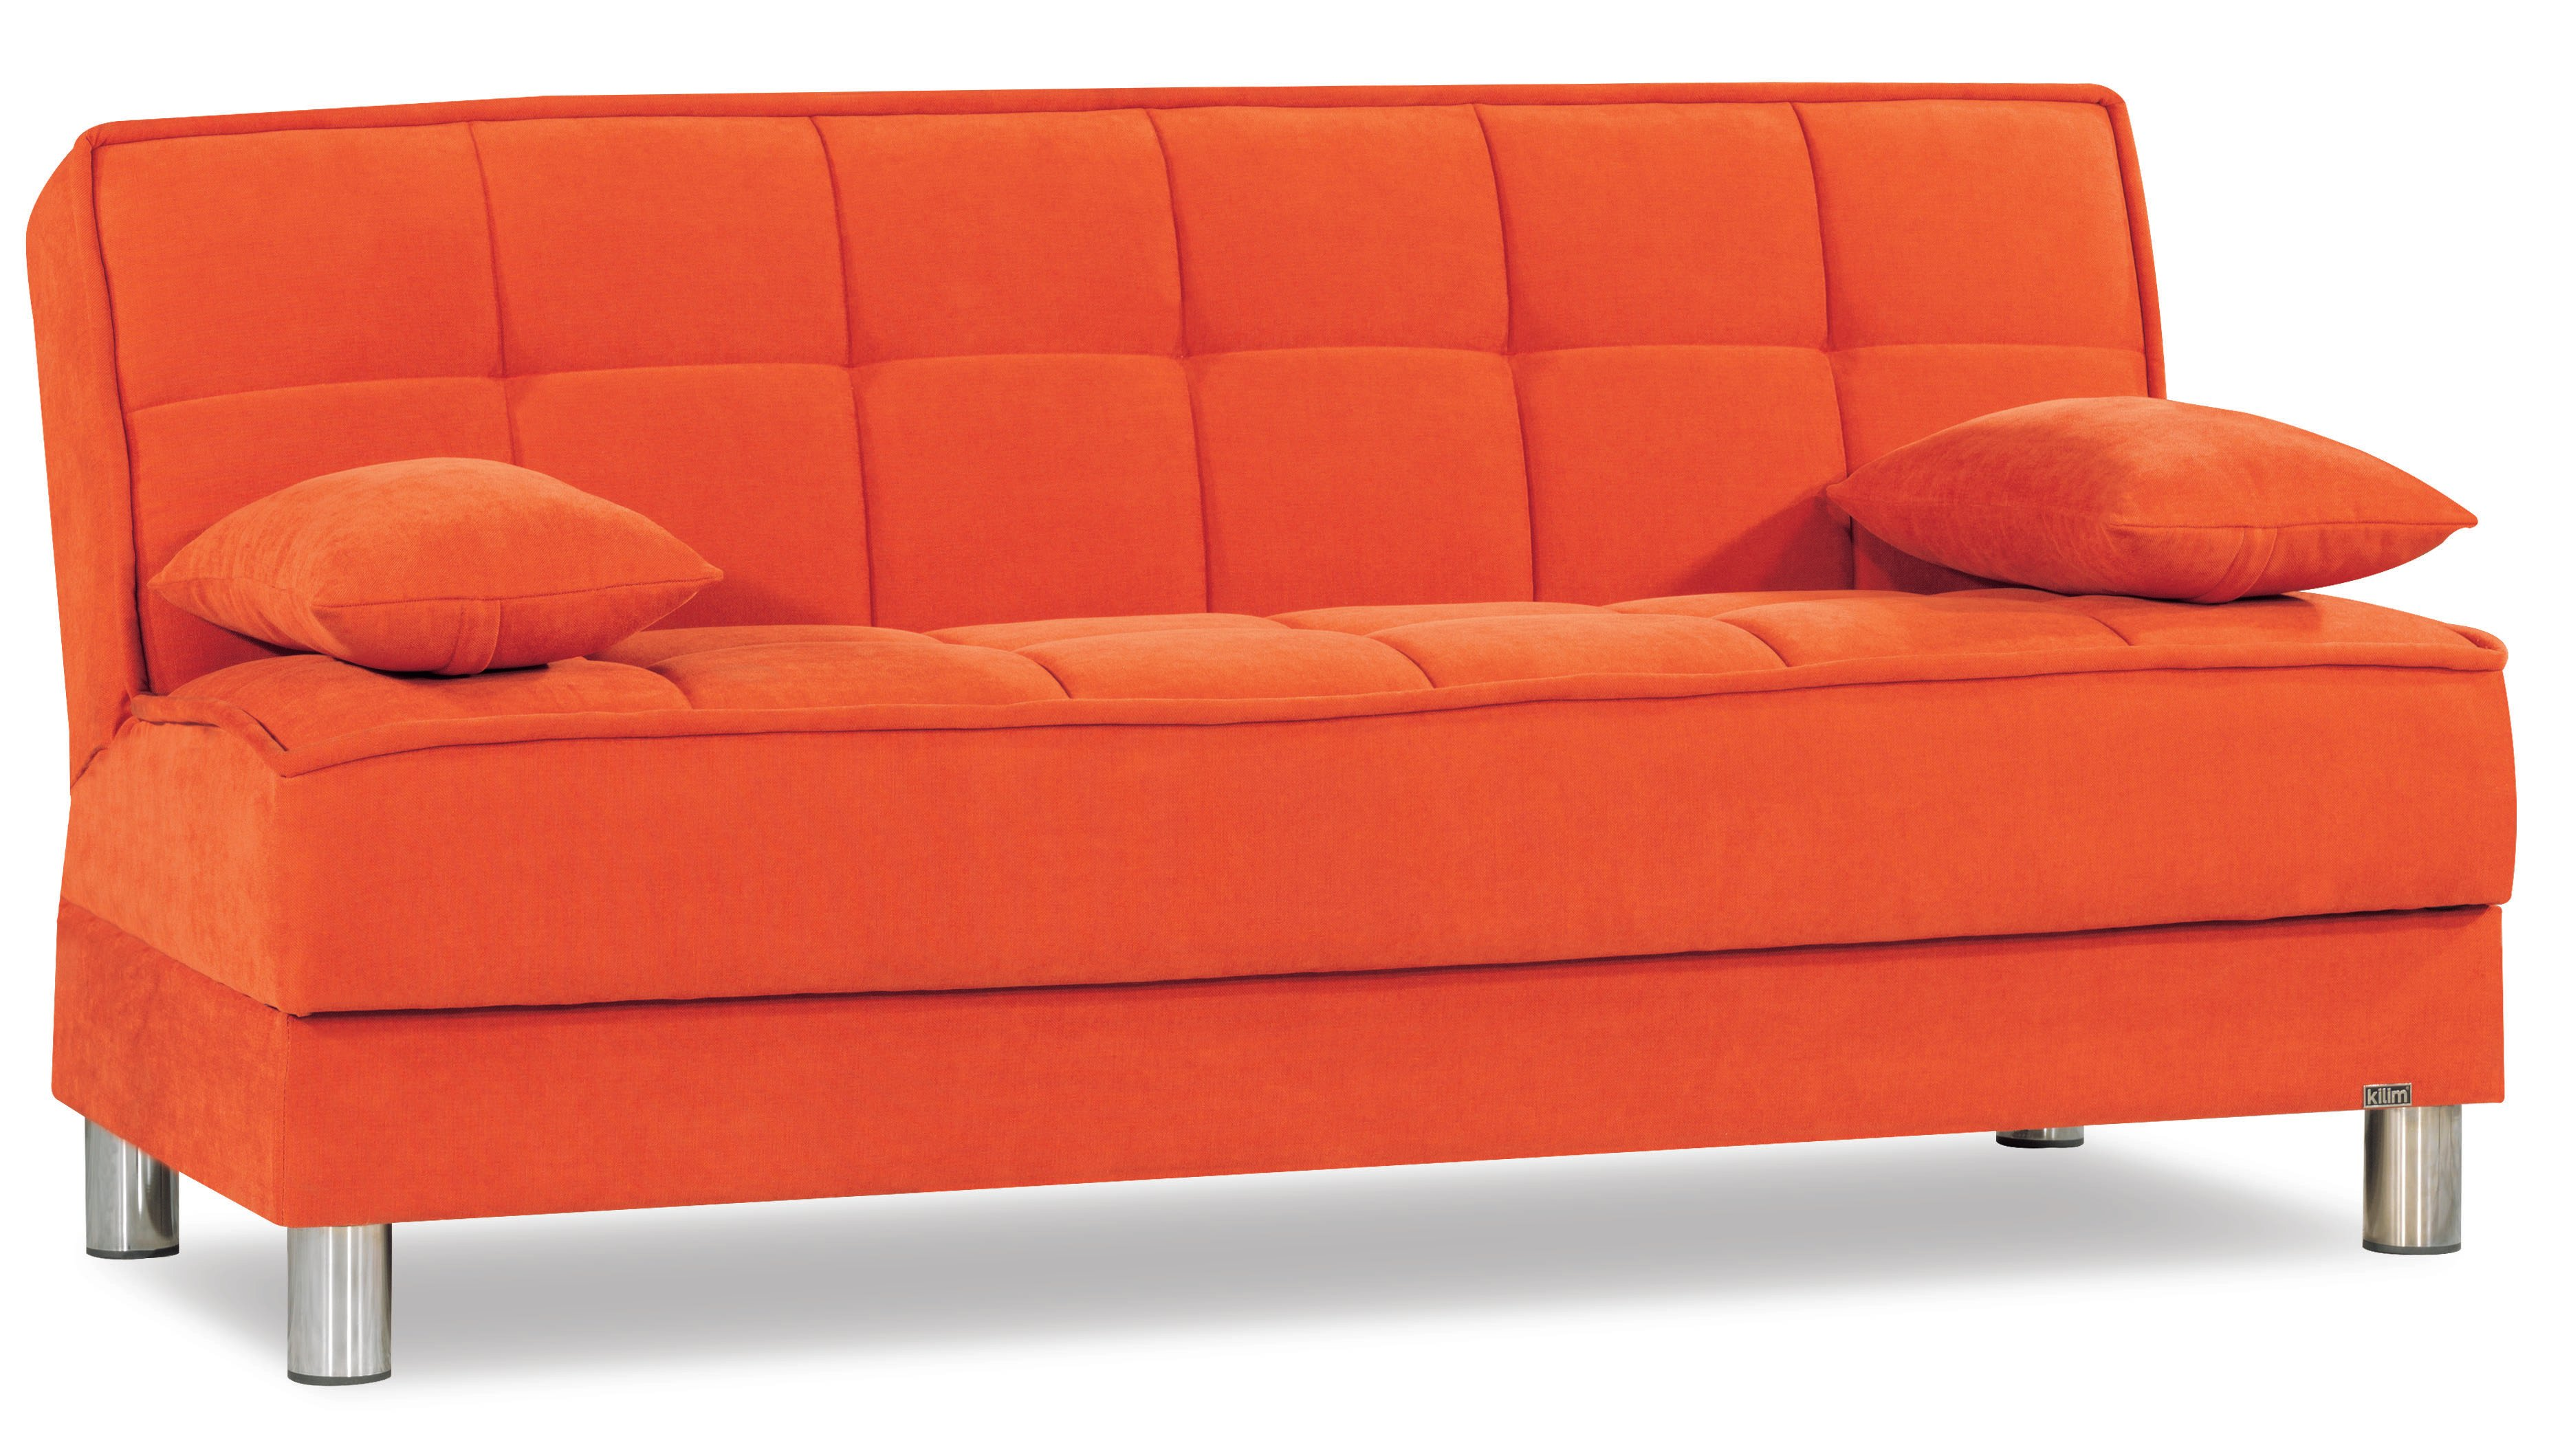 smart fit orange convertible sofa by casamode. Black Bedroom Furniture Sets. Home Design Ideas